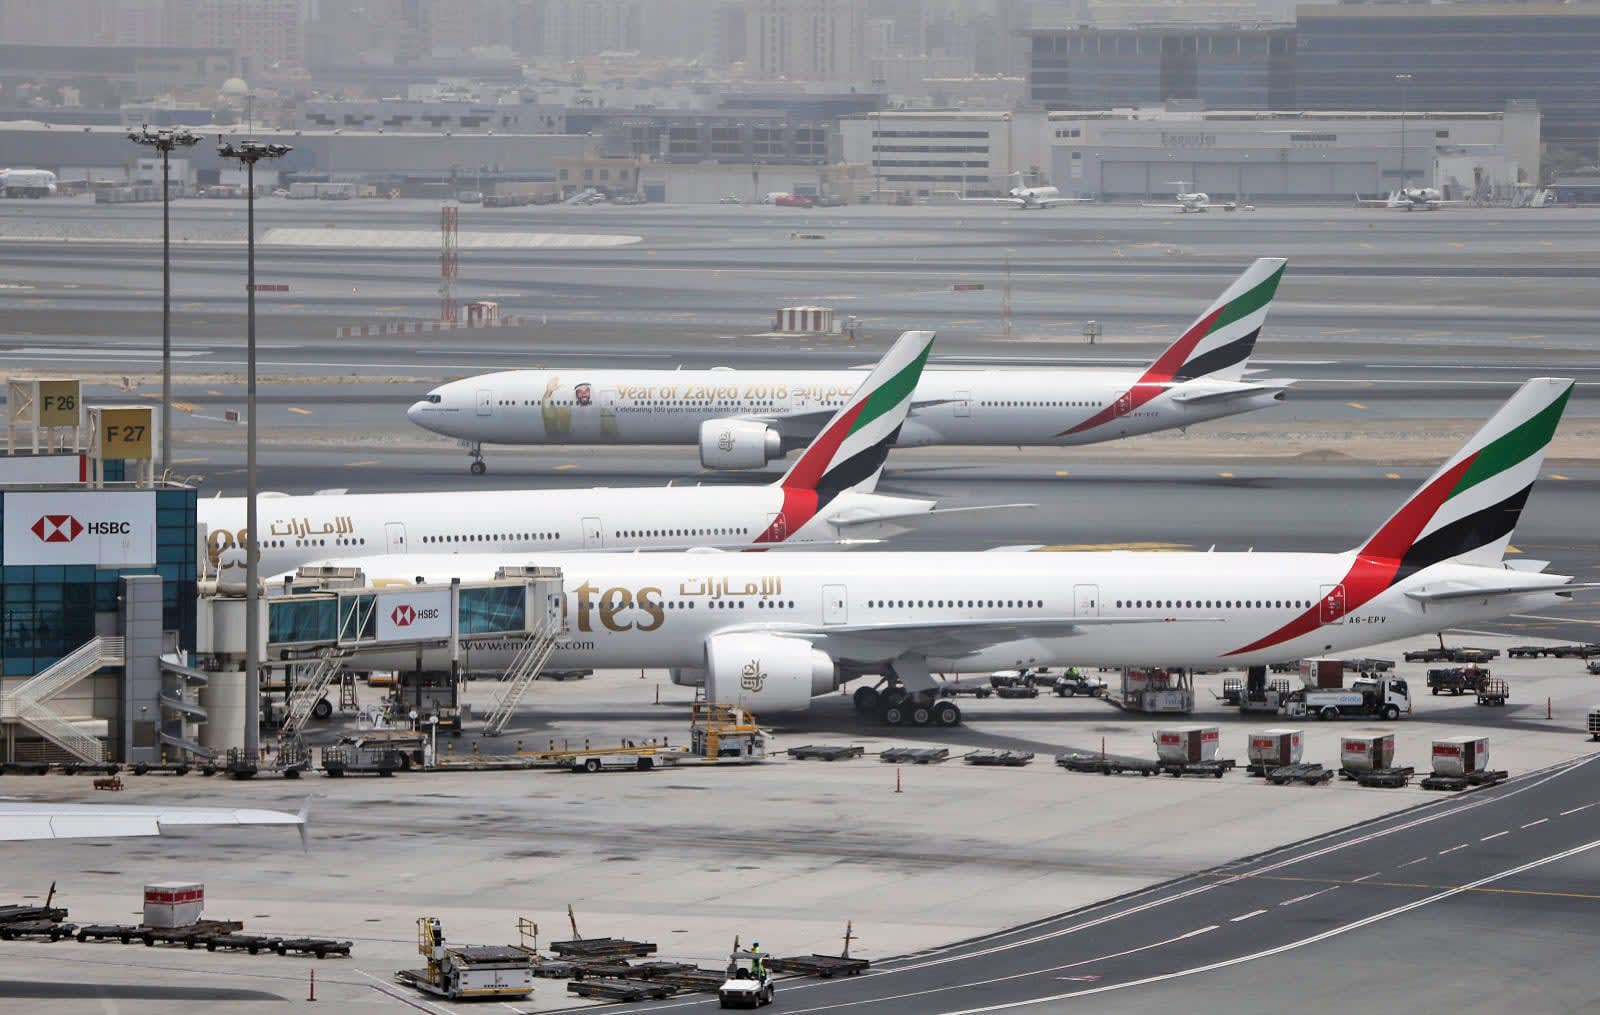 Dubai Airport drone scare temporarily disrupts flights